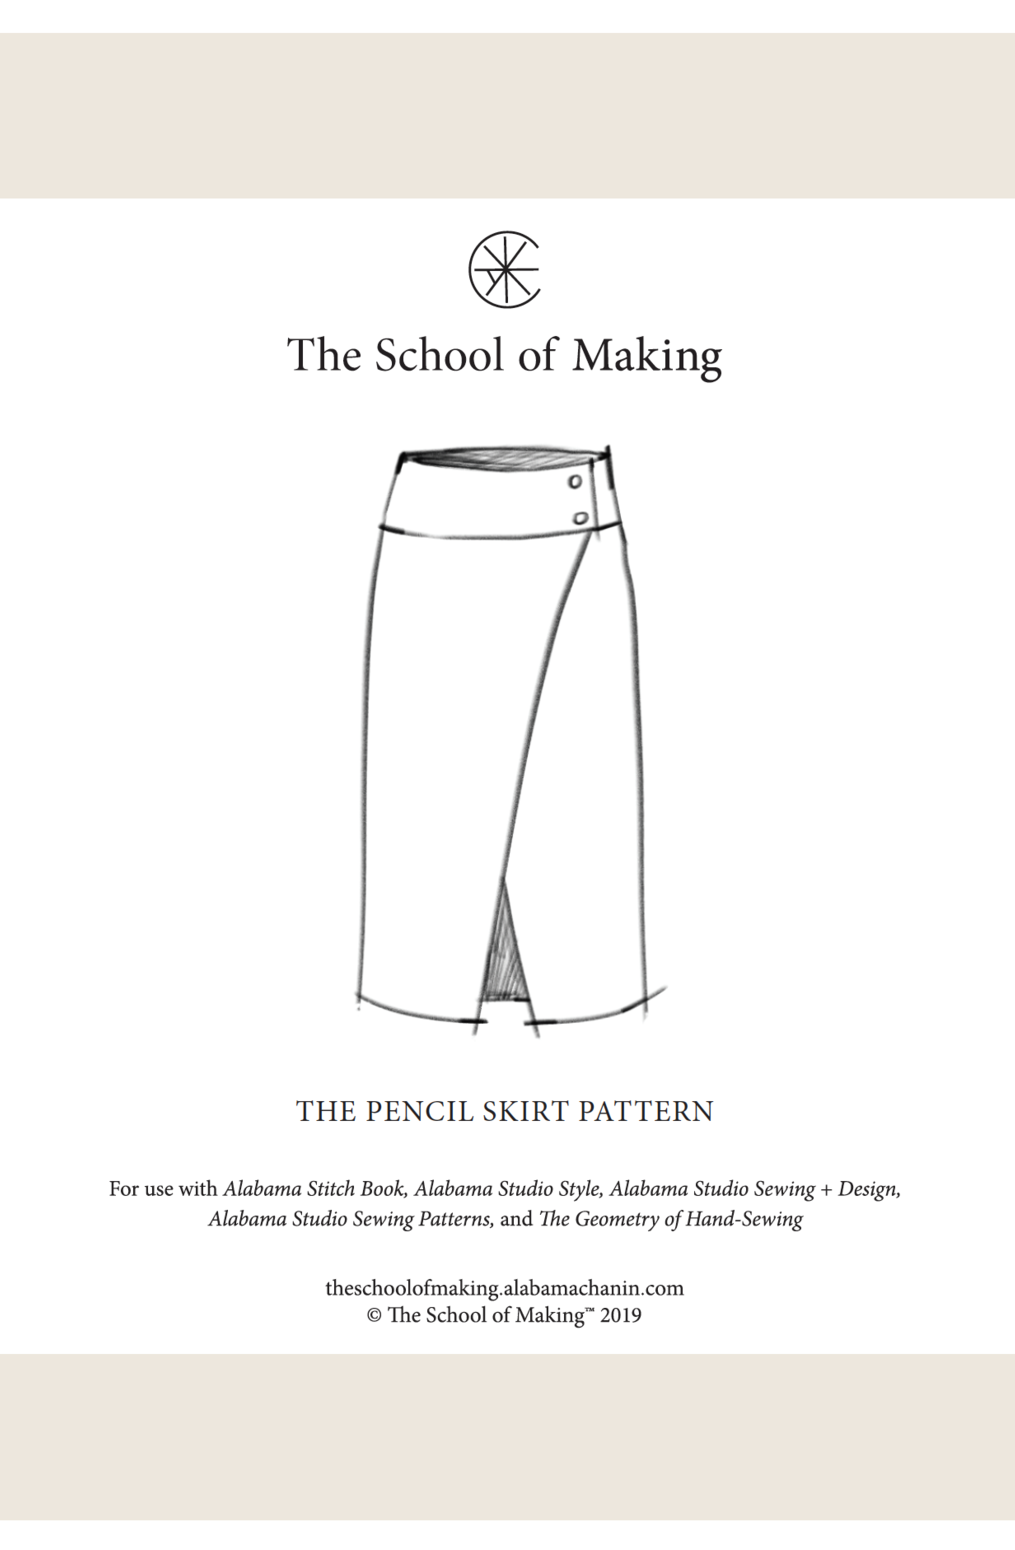 The school of making pencil skirt pattern